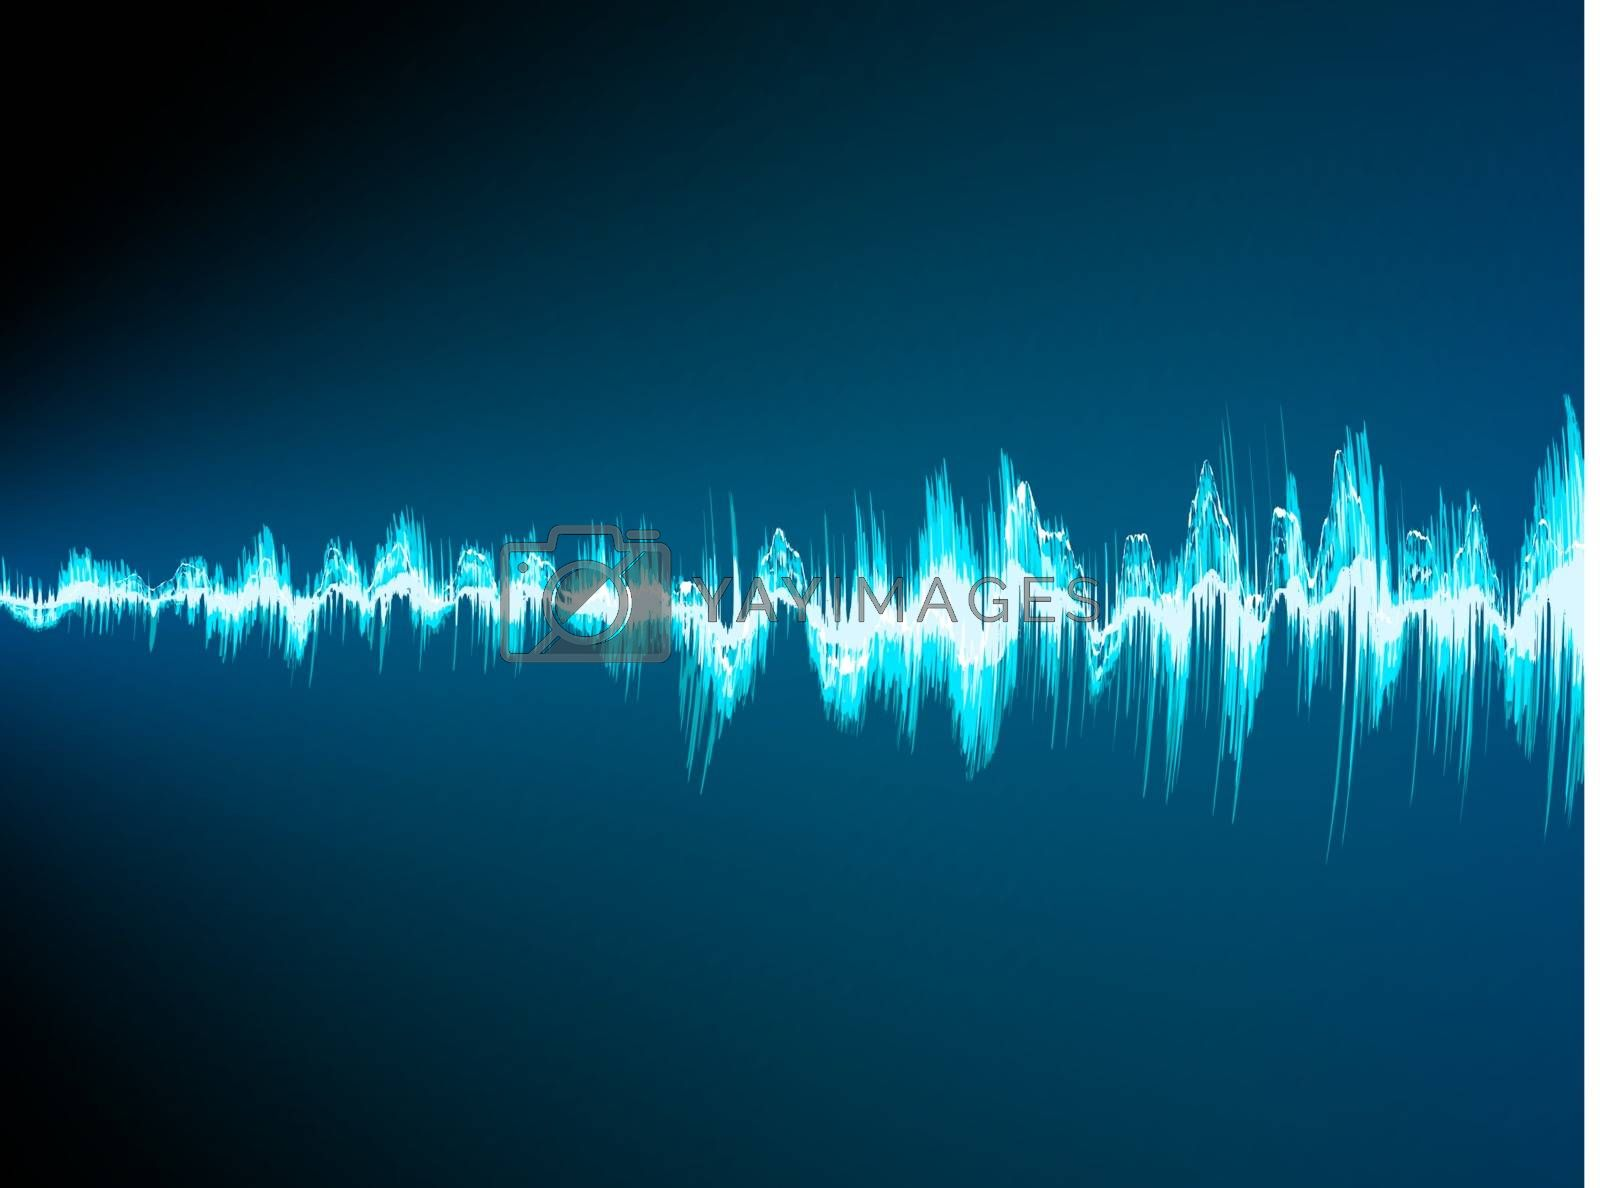 Sound wave abstract background. EPS 10 vector file included